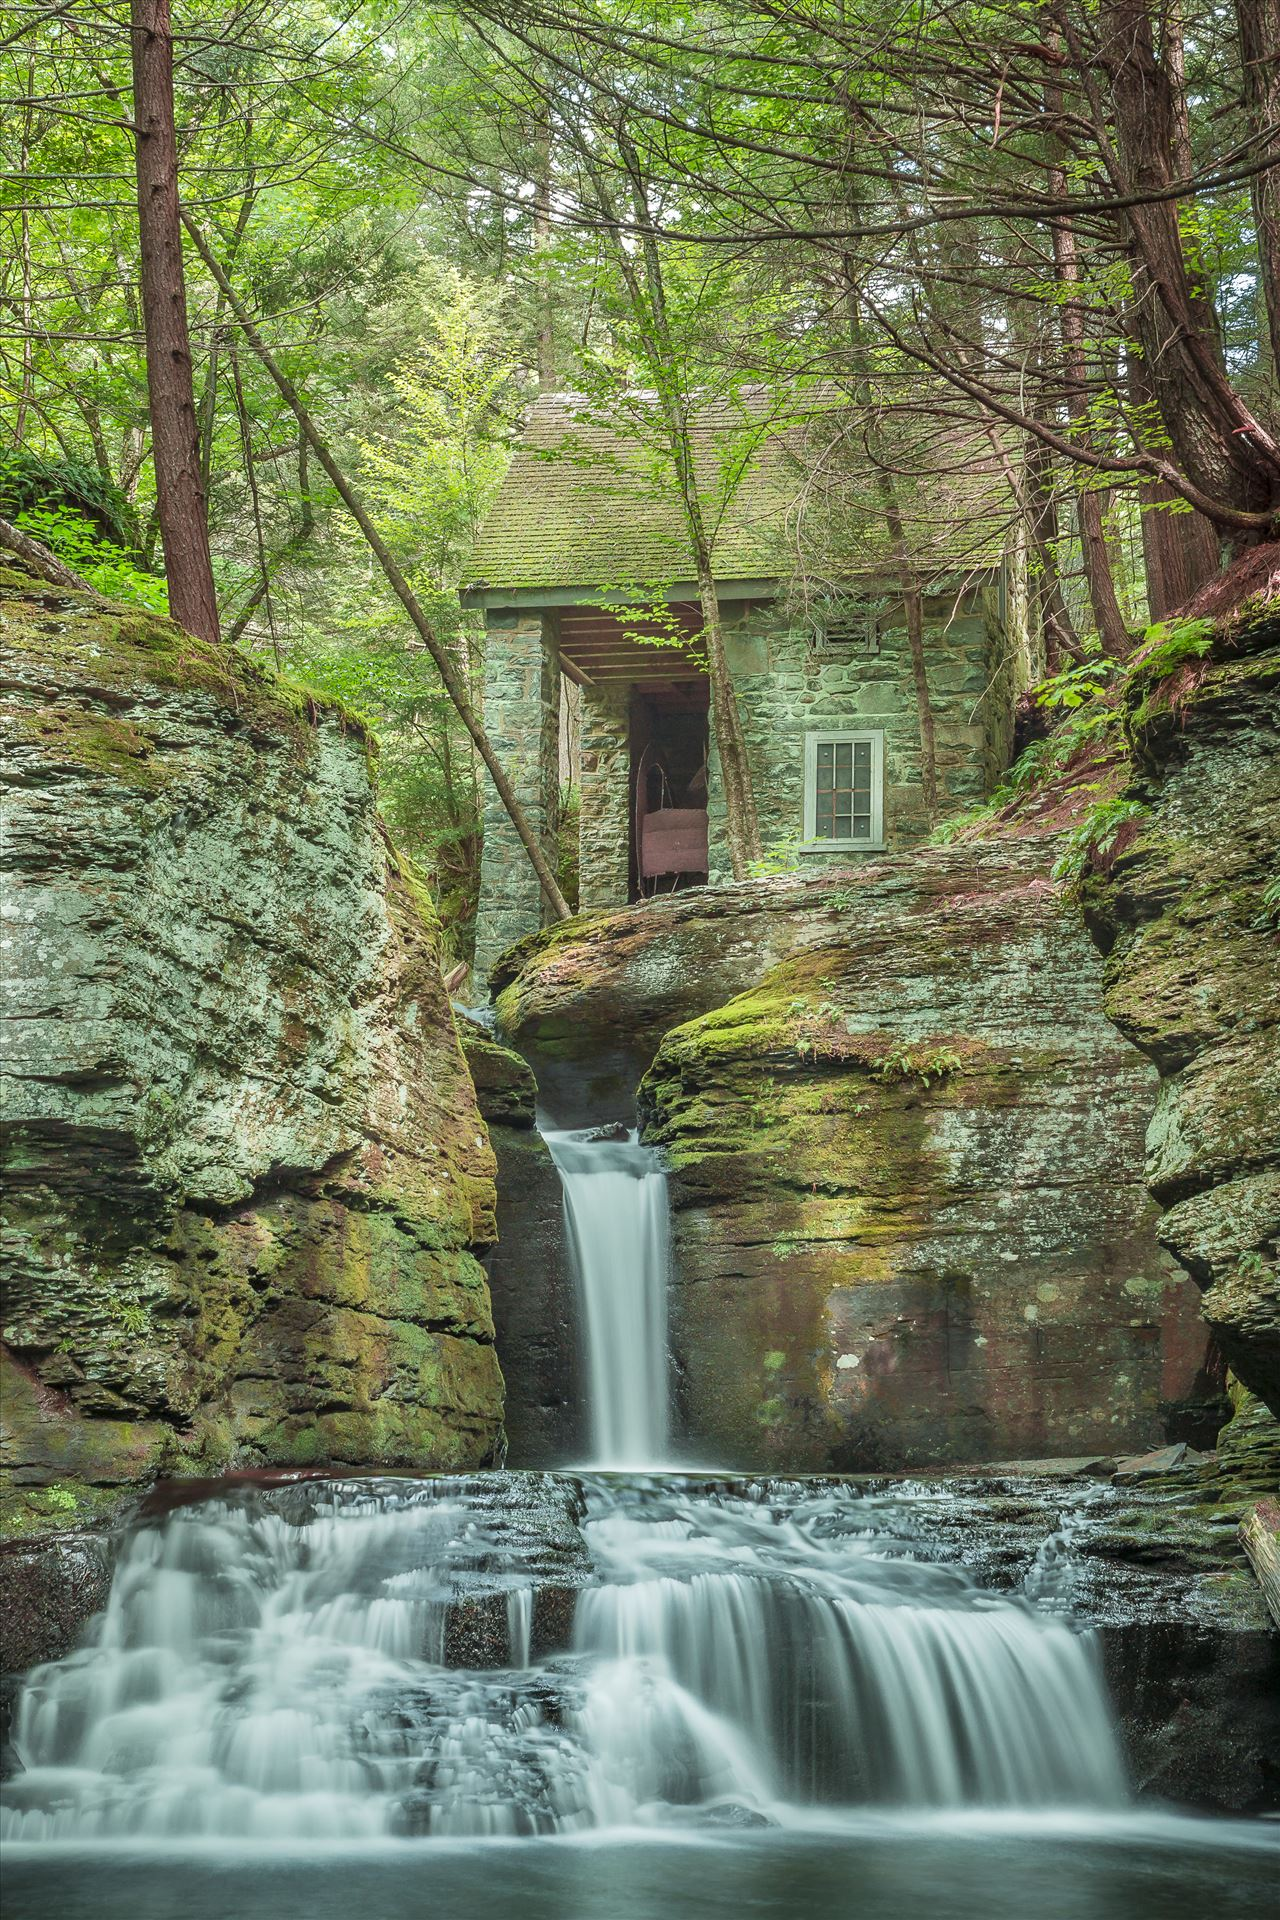 Adam's Falls - On Adam's Creek in Dingman's Ferry, Pennsylvania by Buckmaster